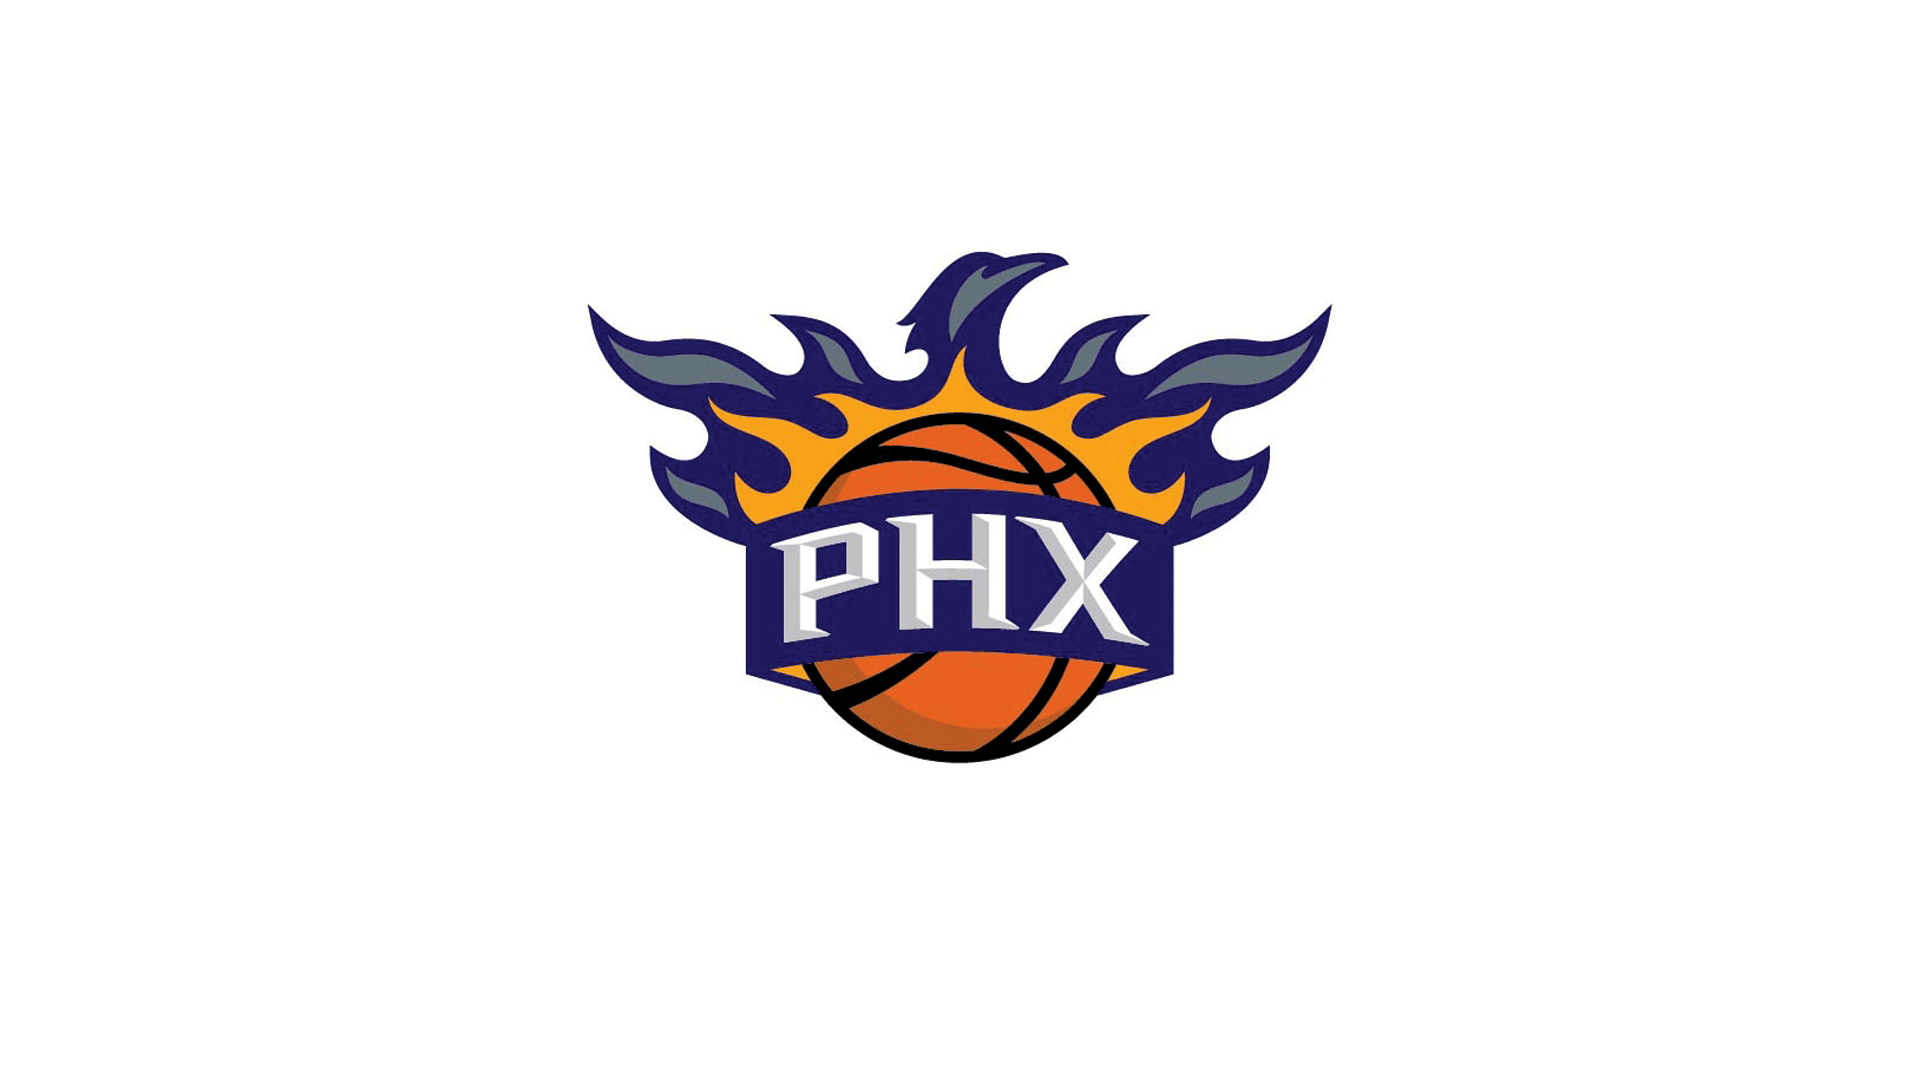 Los Angeles Lakers - Sacramento Kings Sofascore Phoenix Suns Basketball Kader